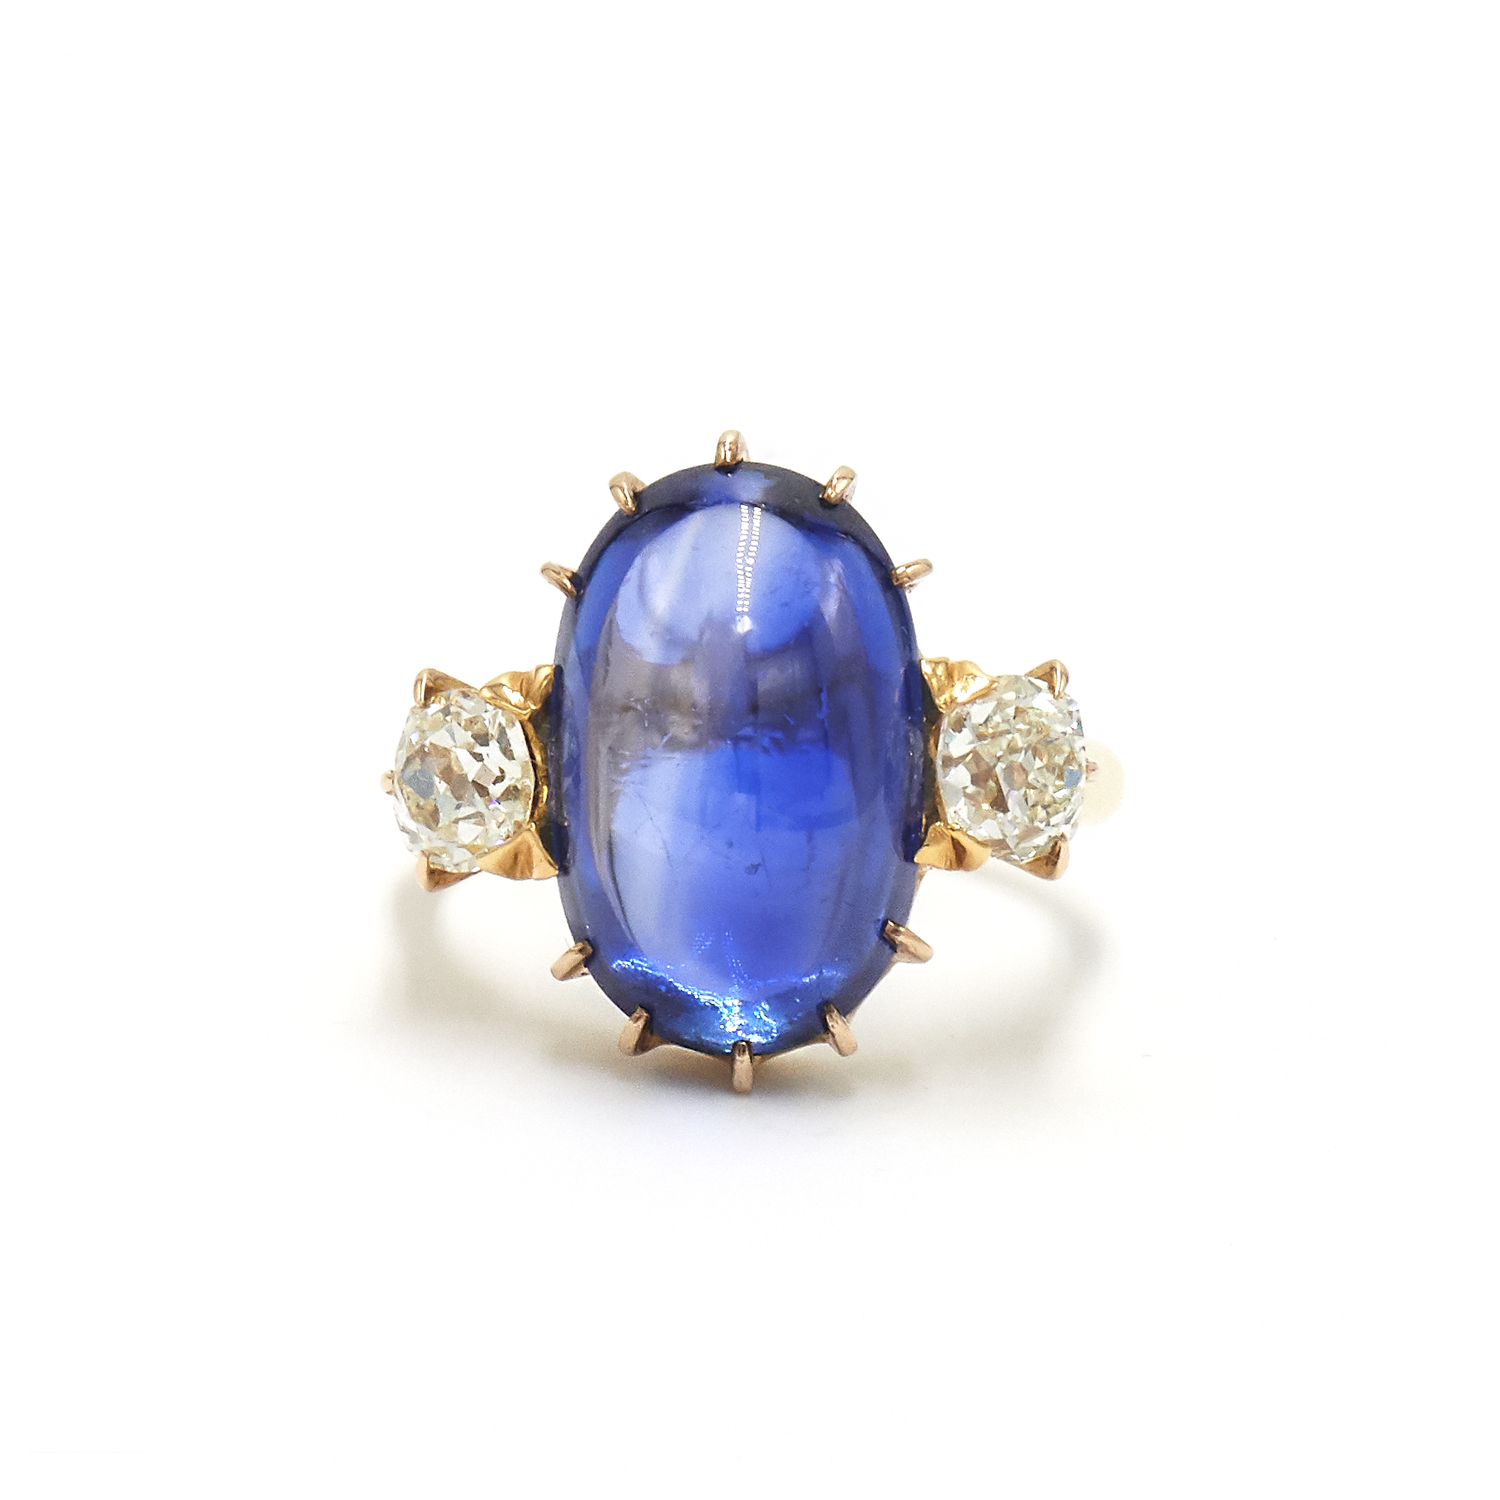 Antique Cabochon Ceylon Sapphire and Diamond Ring by Tiffany & Co Style R-41650-FL-0-0